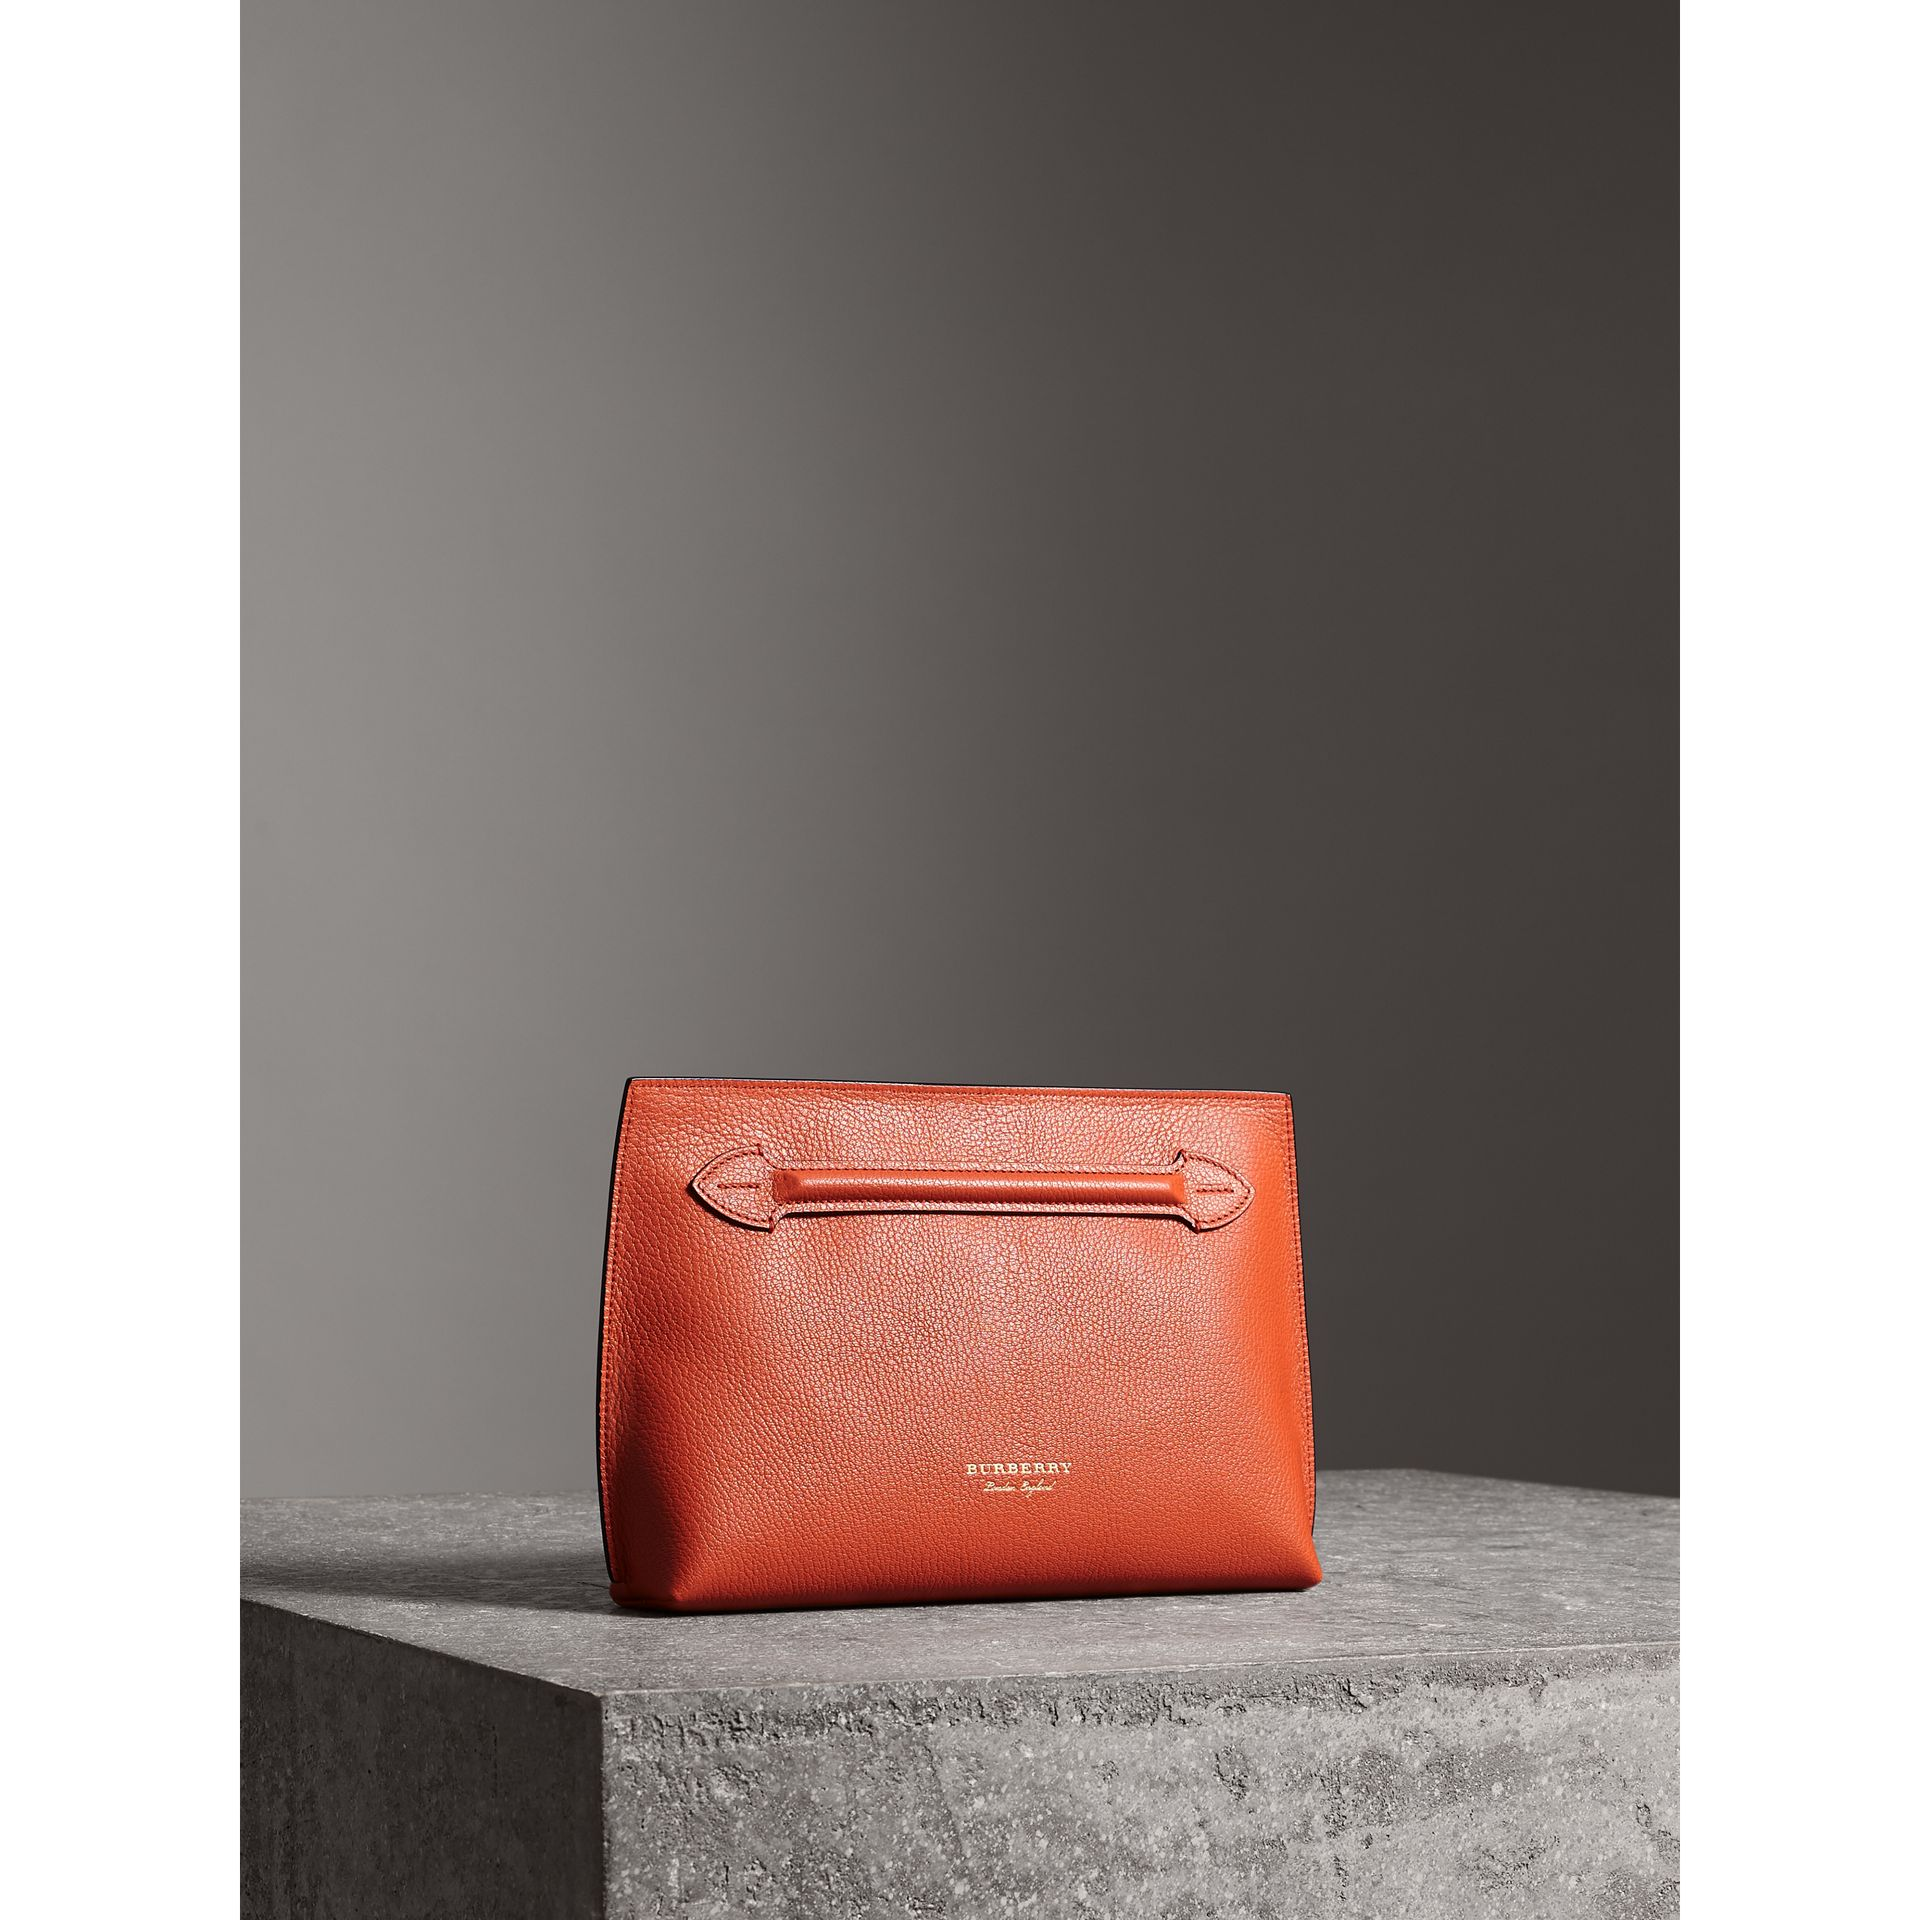 Grainy Leather Wristlet Clutch in Clementine - Women | Burberry - gallery image 8